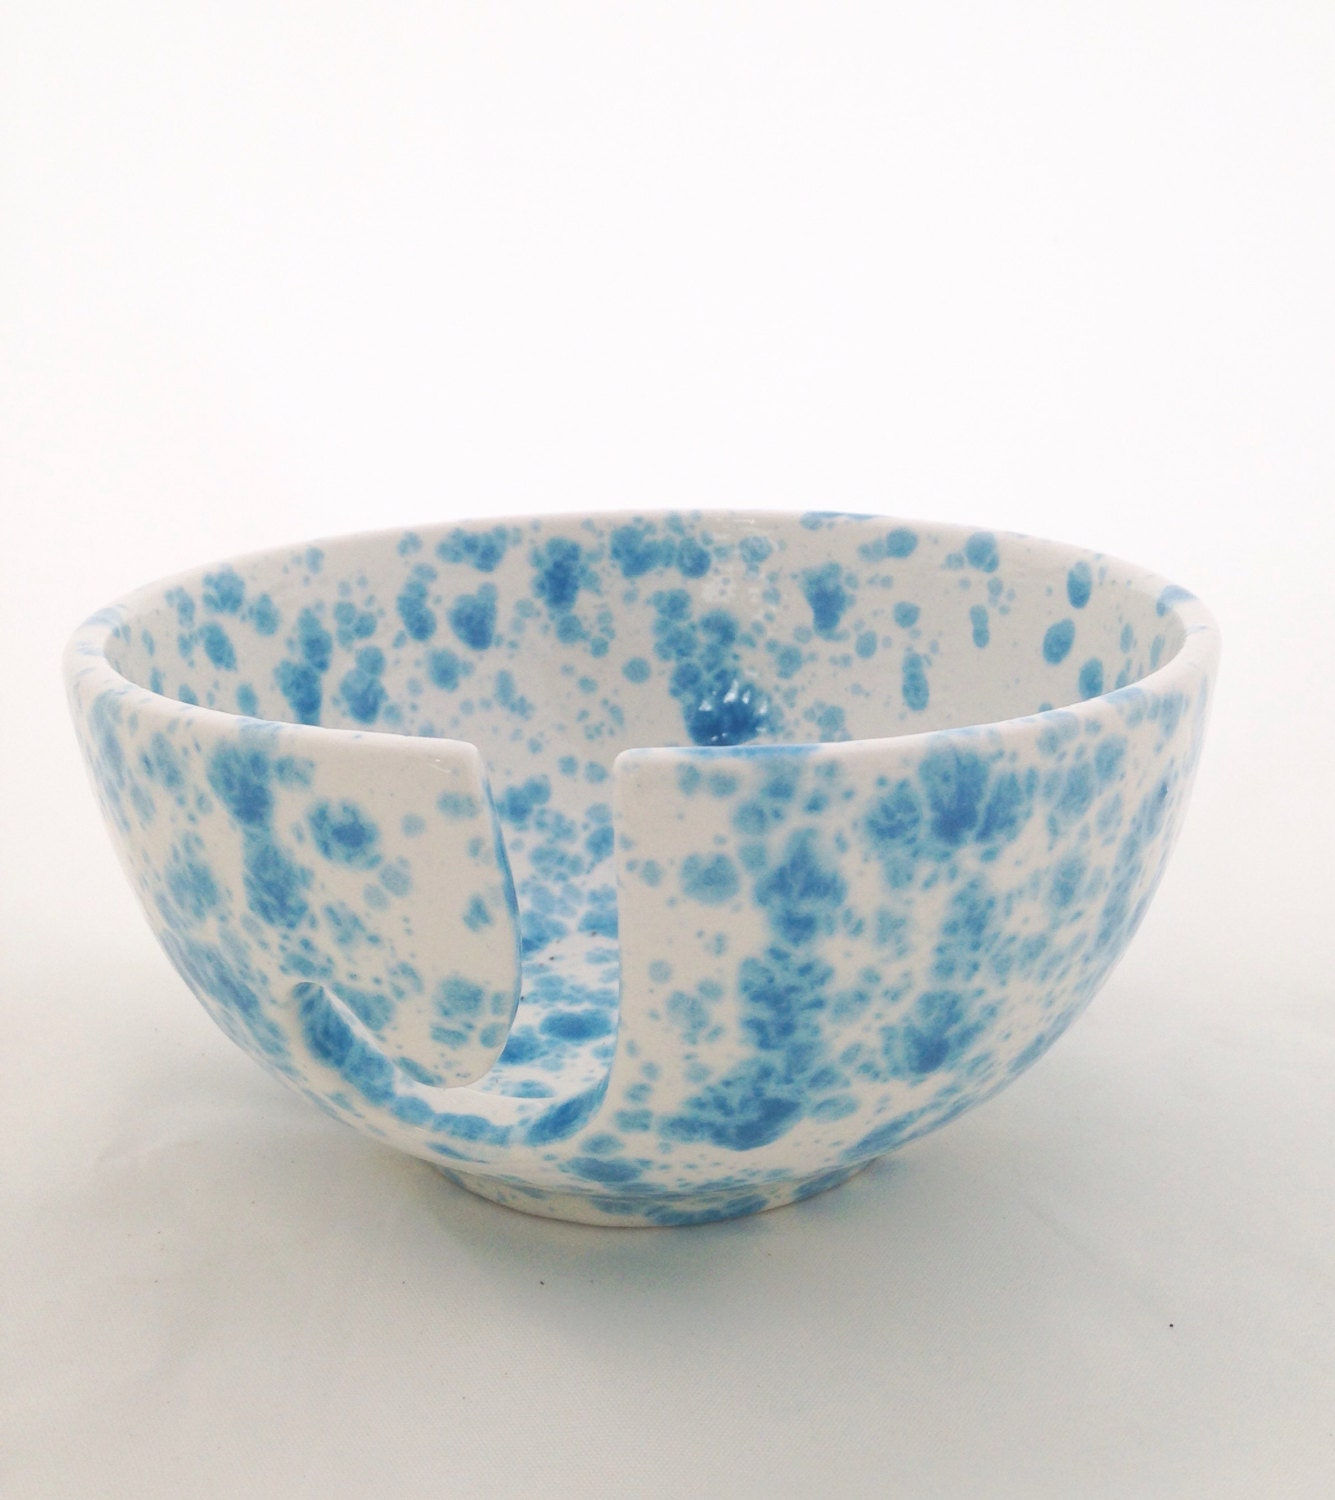 Ceramic Yarn Bowl Hand Painted Pottery Knitting Bowl Blue